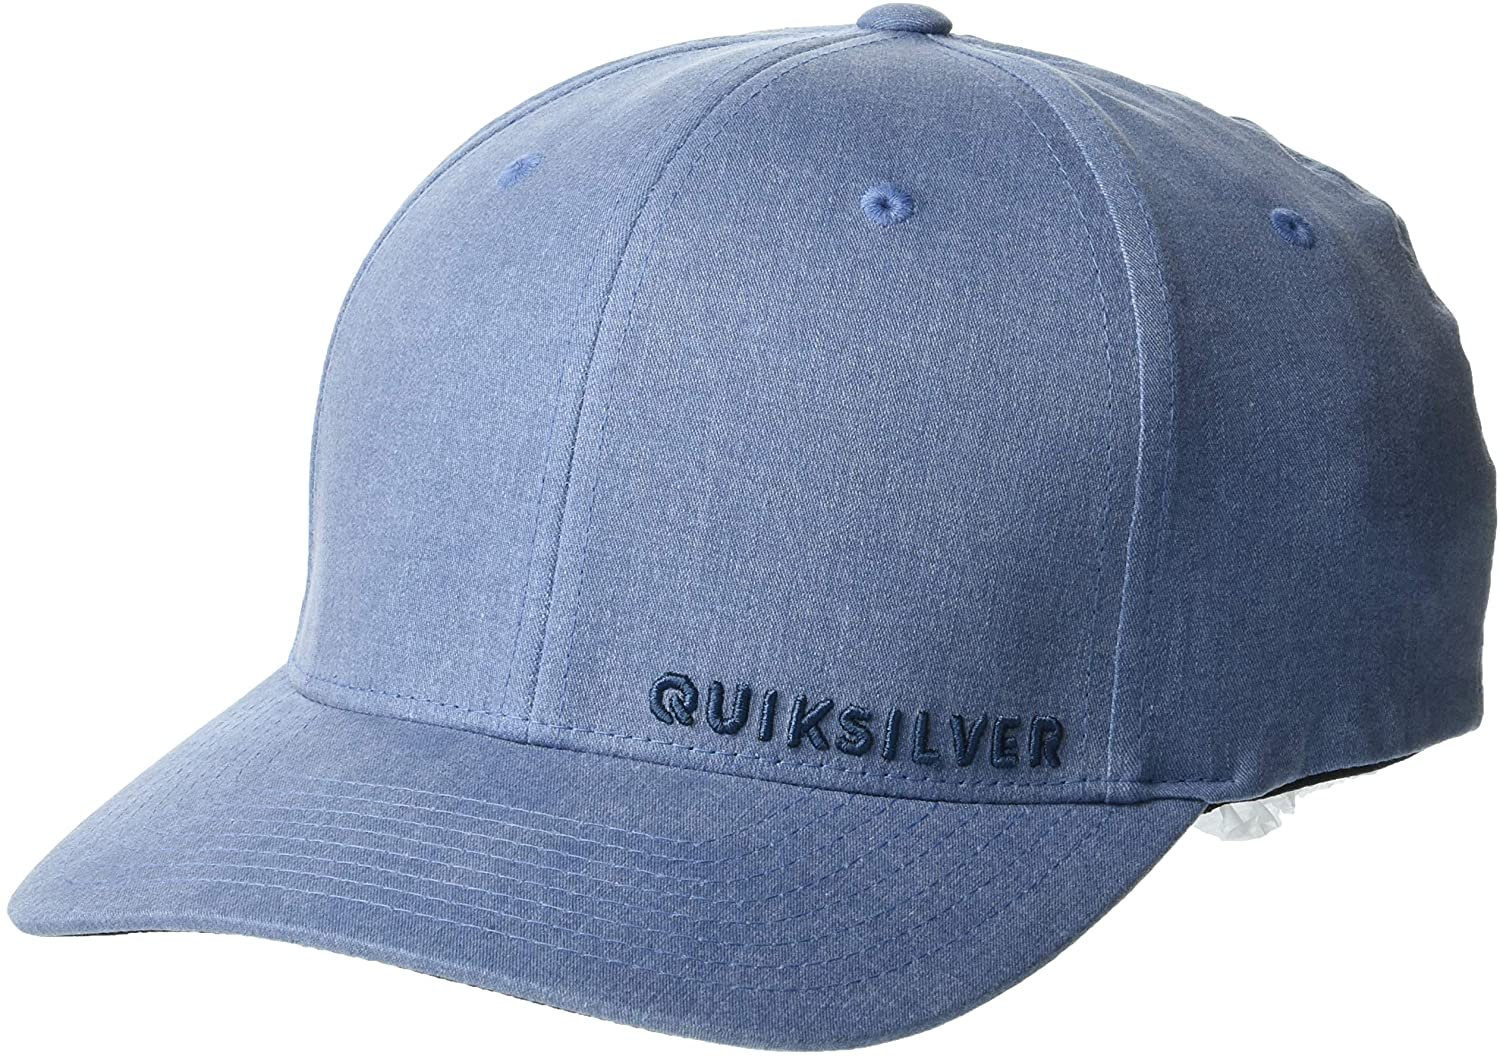 Quiksilver Men's Sidestay Fit Import Stretch Dealing full price reduction Hat